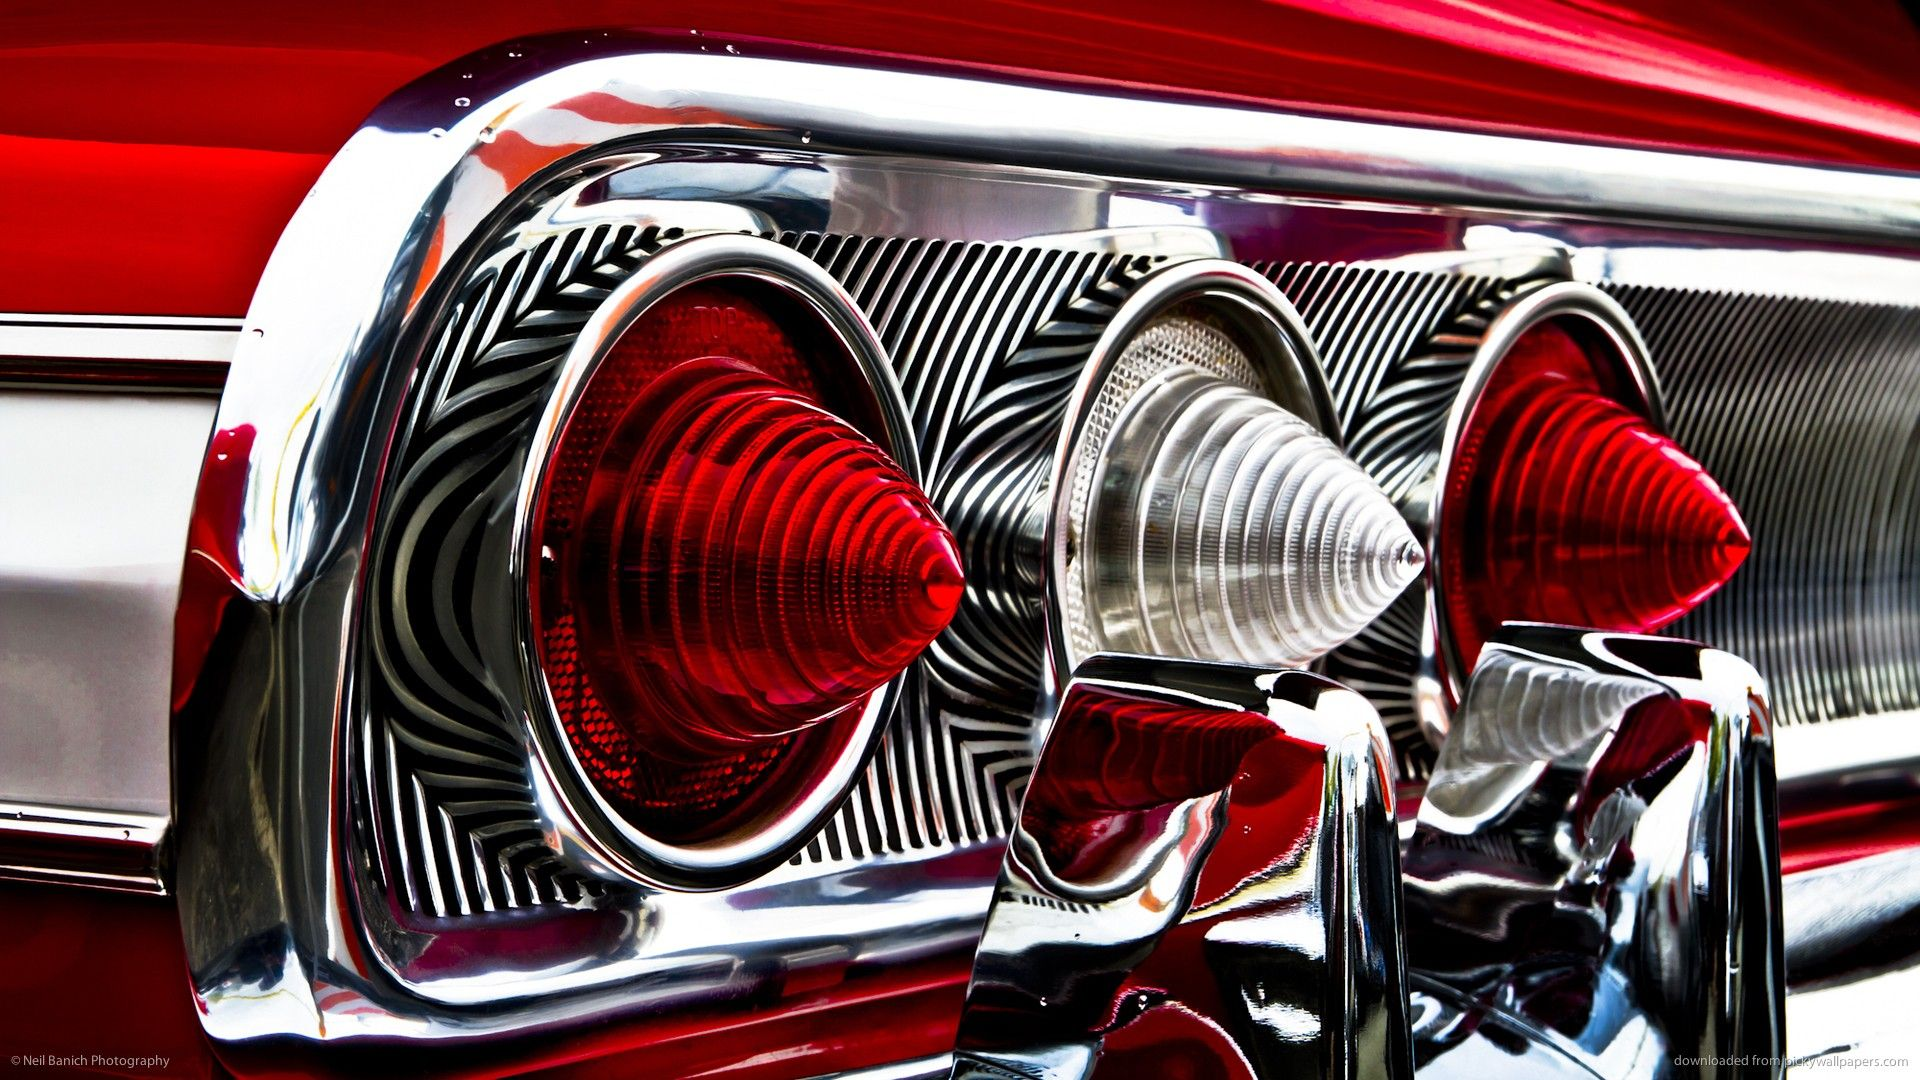 Classic car classic hot rod tail light red chevrolet chevy impala